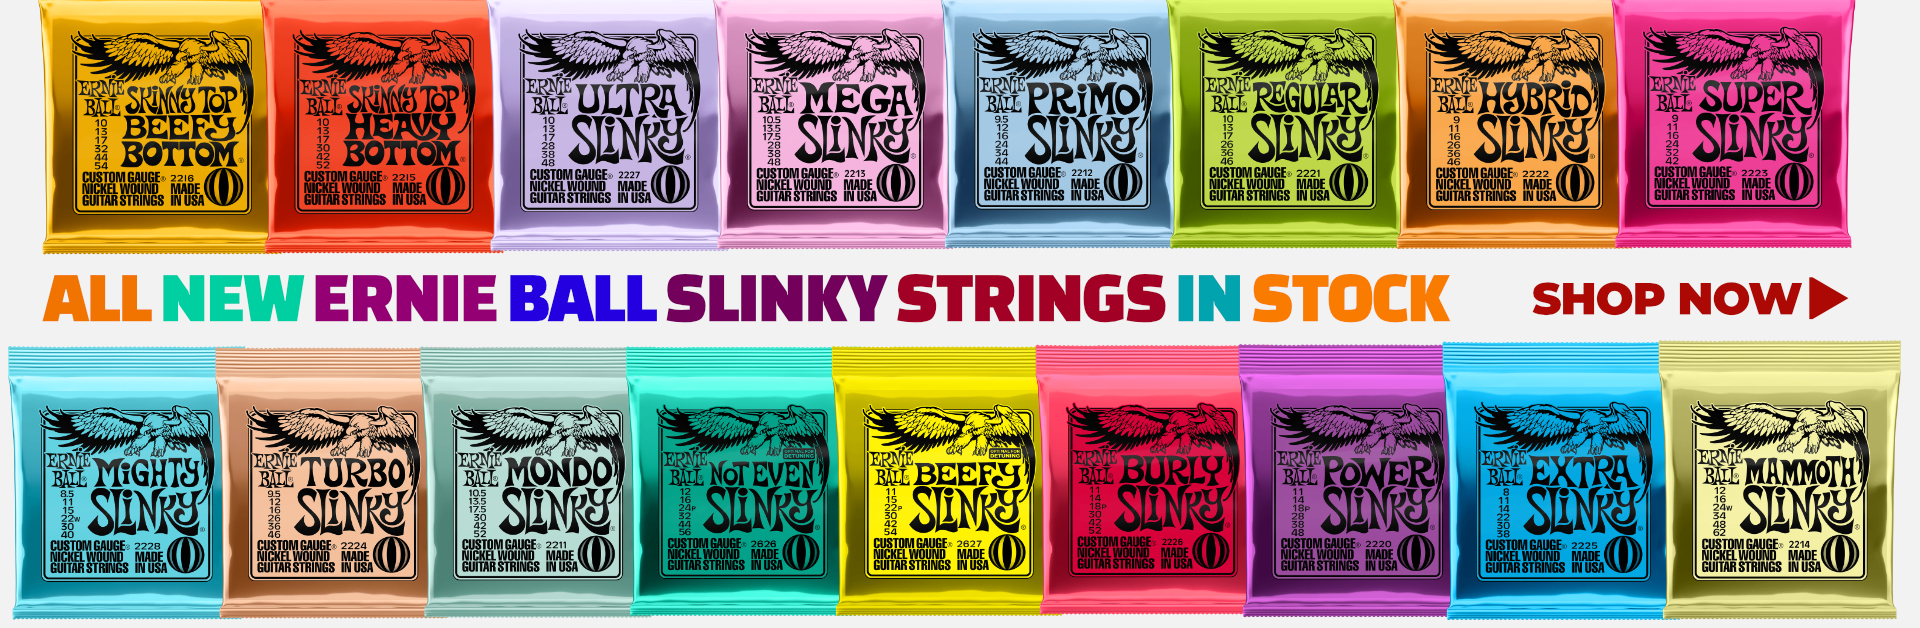 All New Ernie Ball Slinky Strings In Stock  - Shop Now